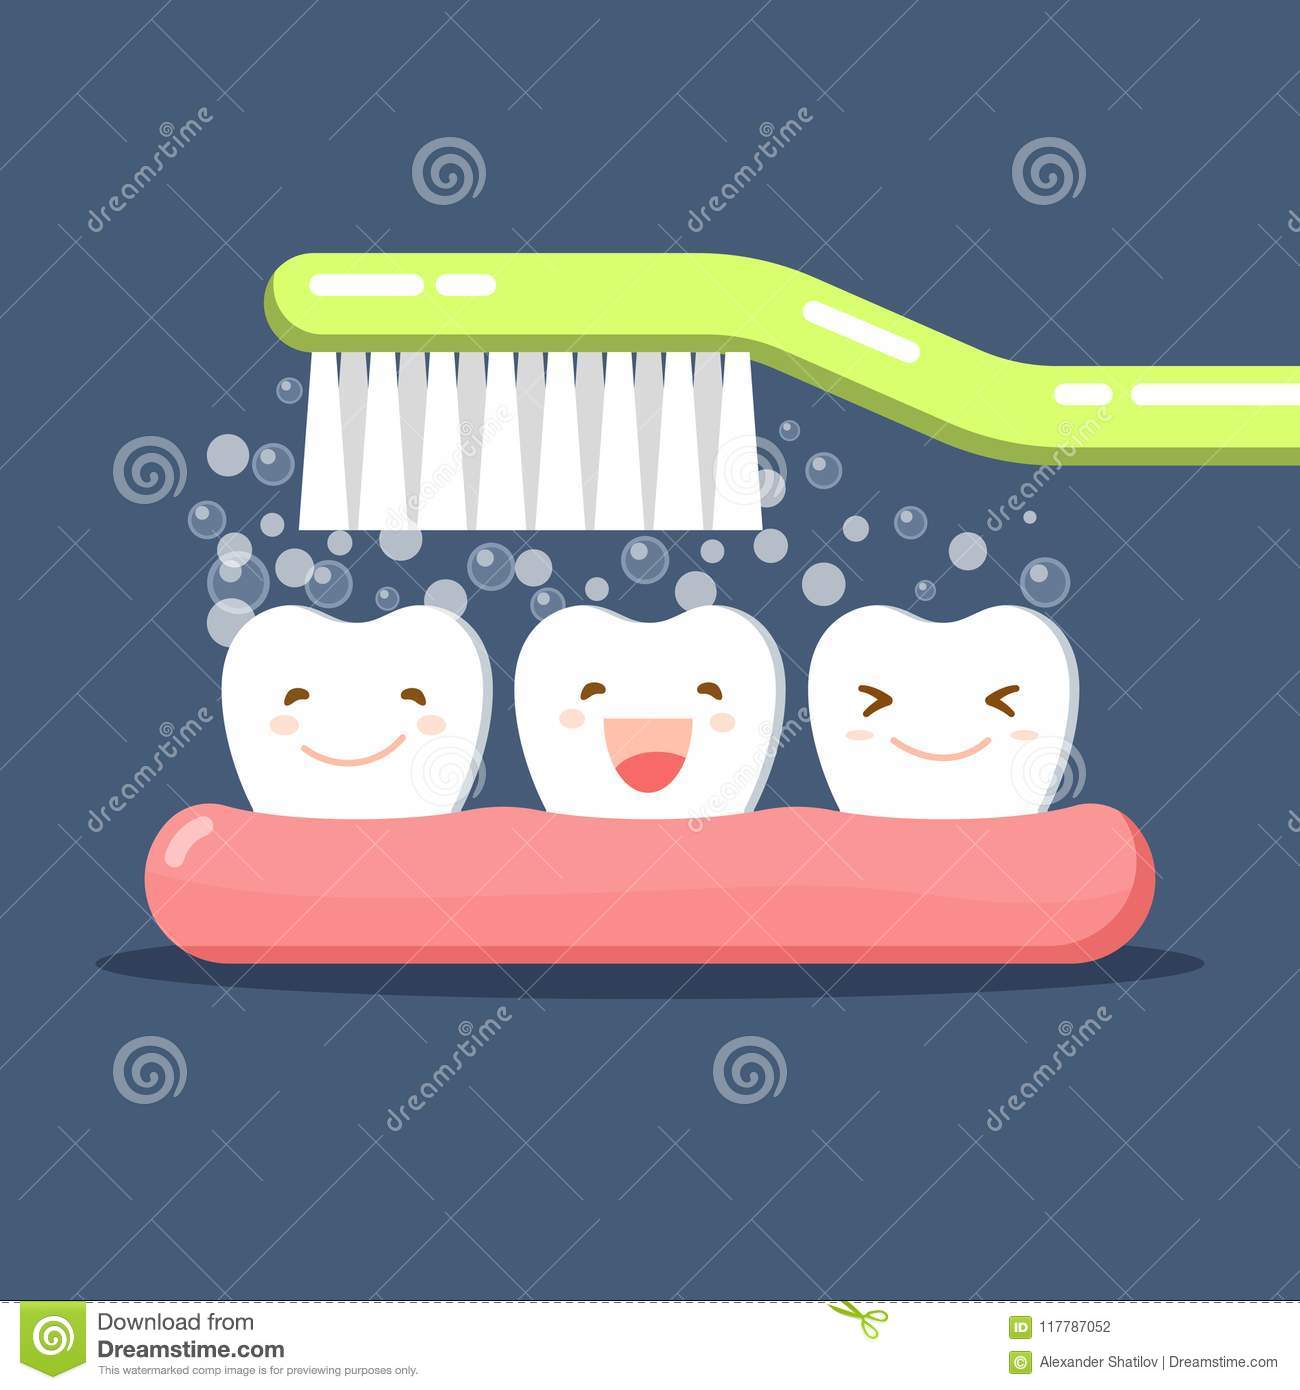 Happy Cute cartoon tooth and toothbrush. Brushing Teeth. Toothpaste bubbles foam. Oral hygiene. Dental kids care. Flat